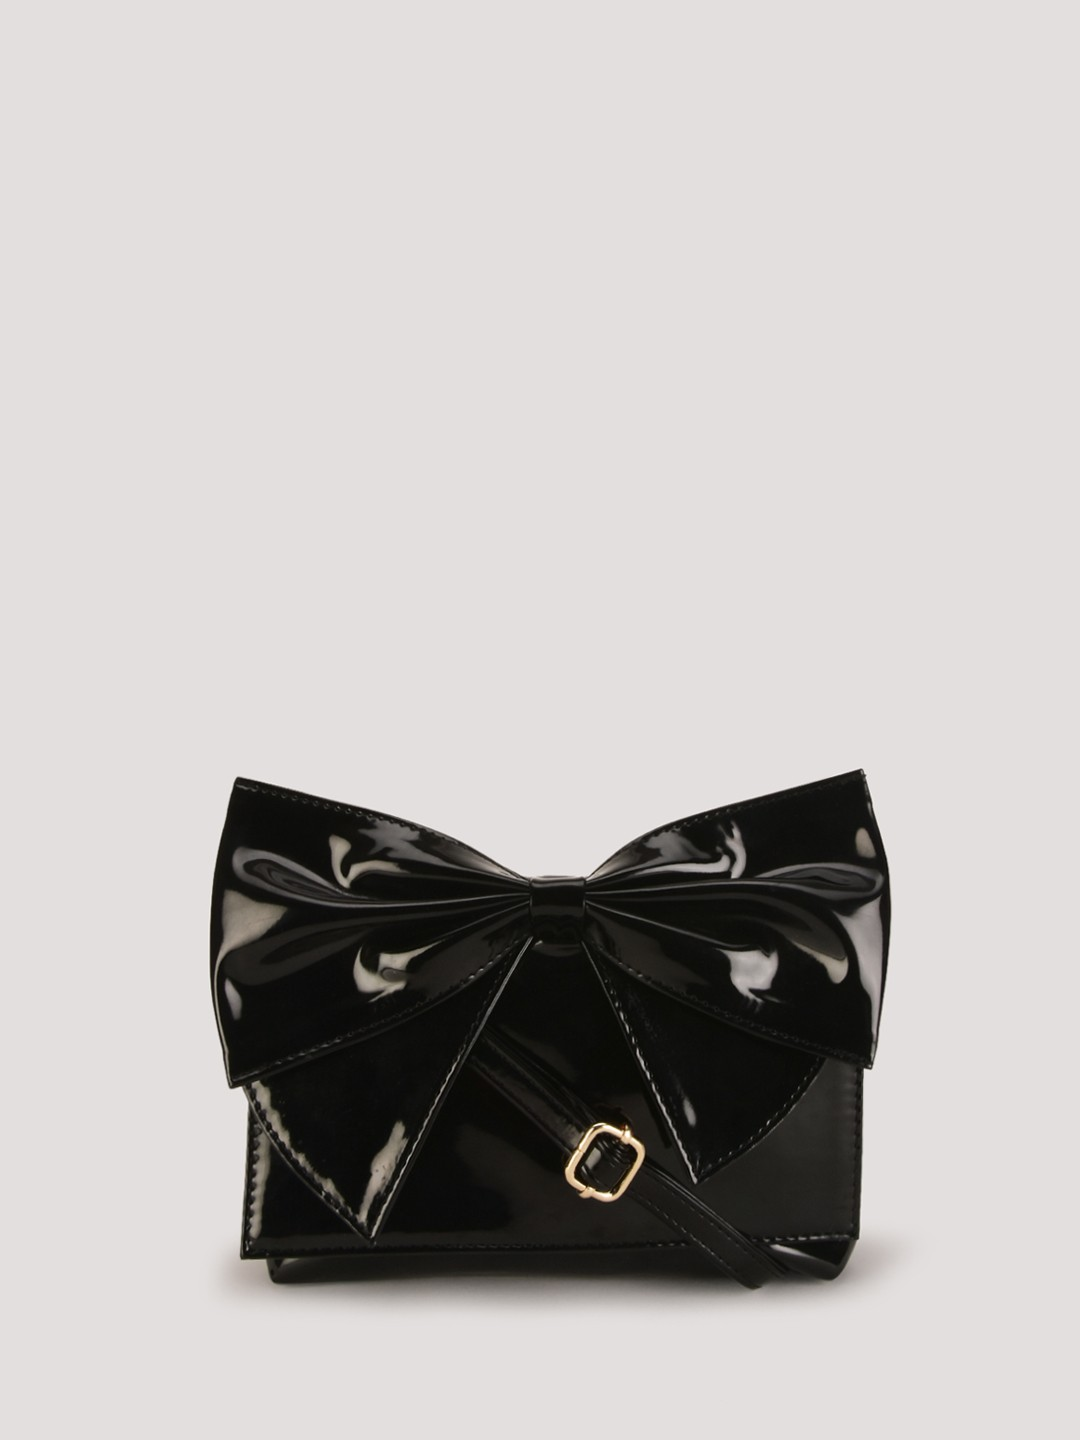 Buy PARIS BELLE Patent Bow Sling Bag For Women - Women's Black ...